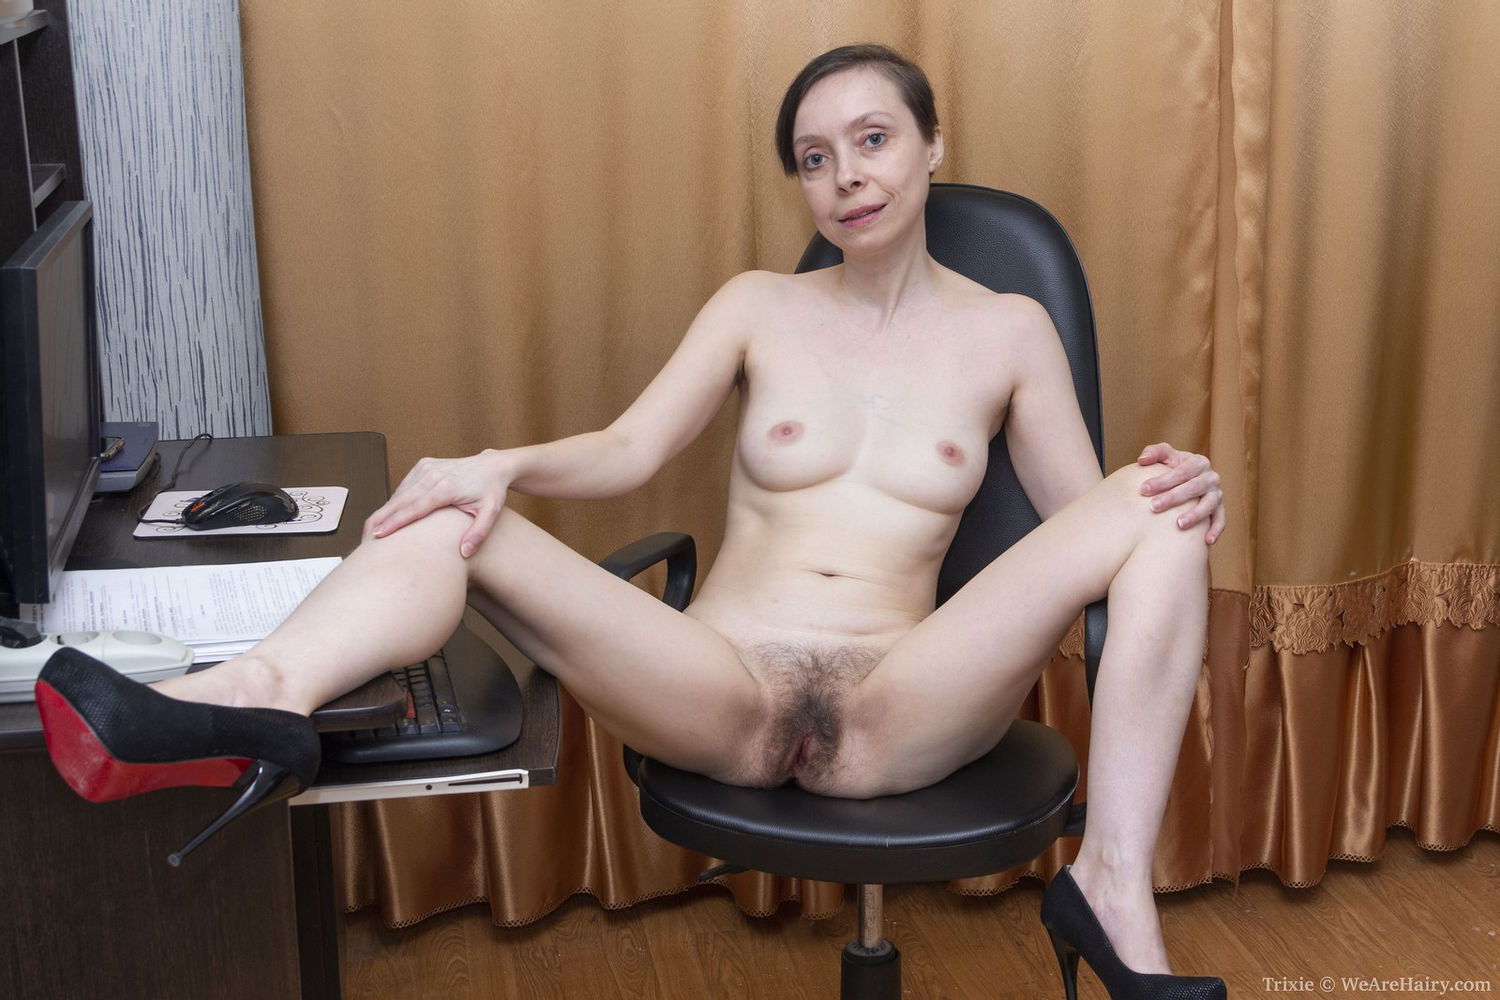 Short haired skinny milf with long legs in Louboutin high heels Trixie's bushy pussy and hairy ass